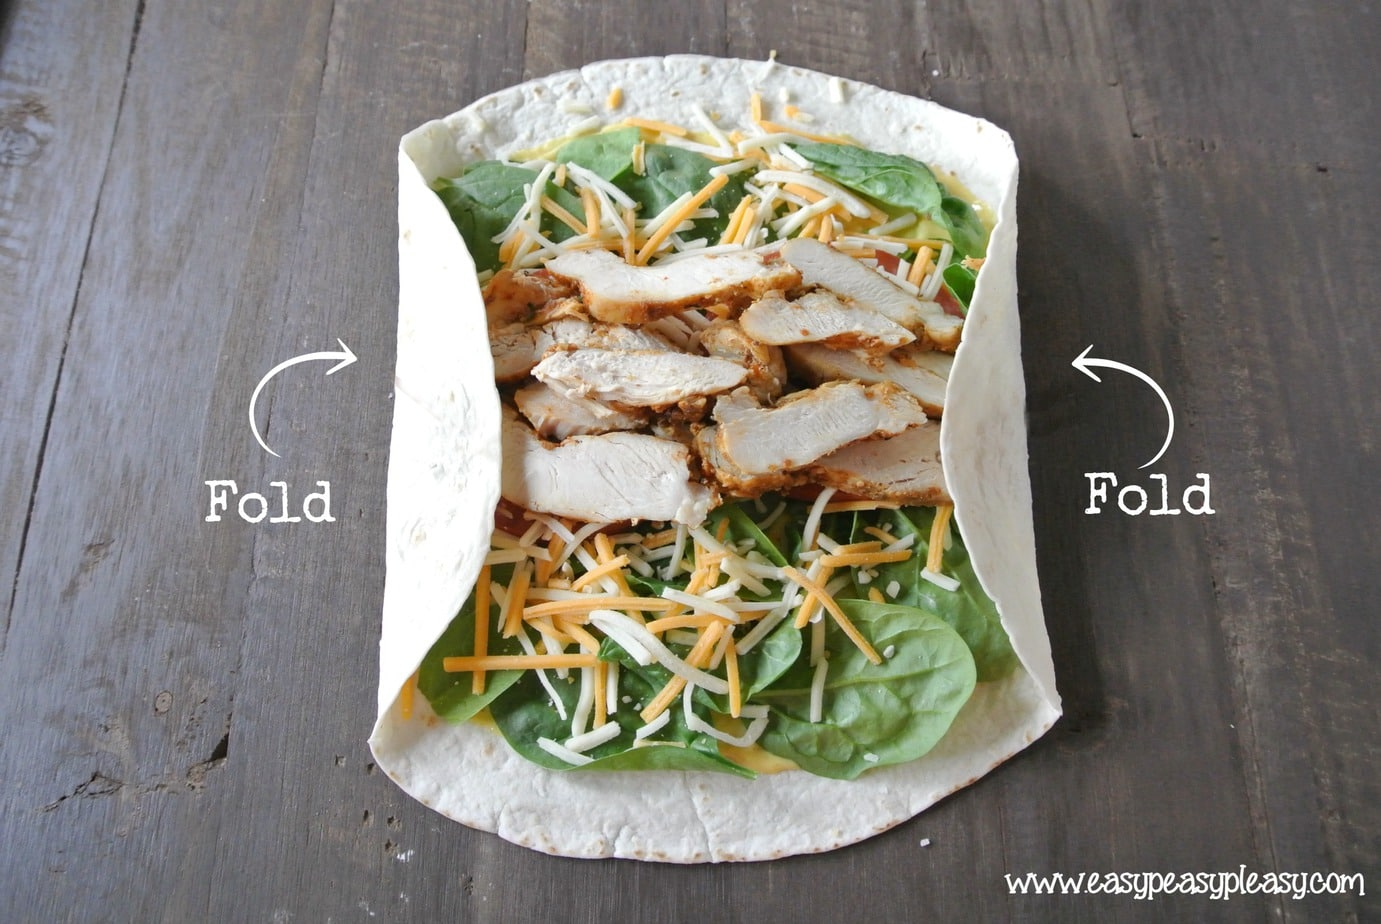 How to make a wrap. Fold in both sides.